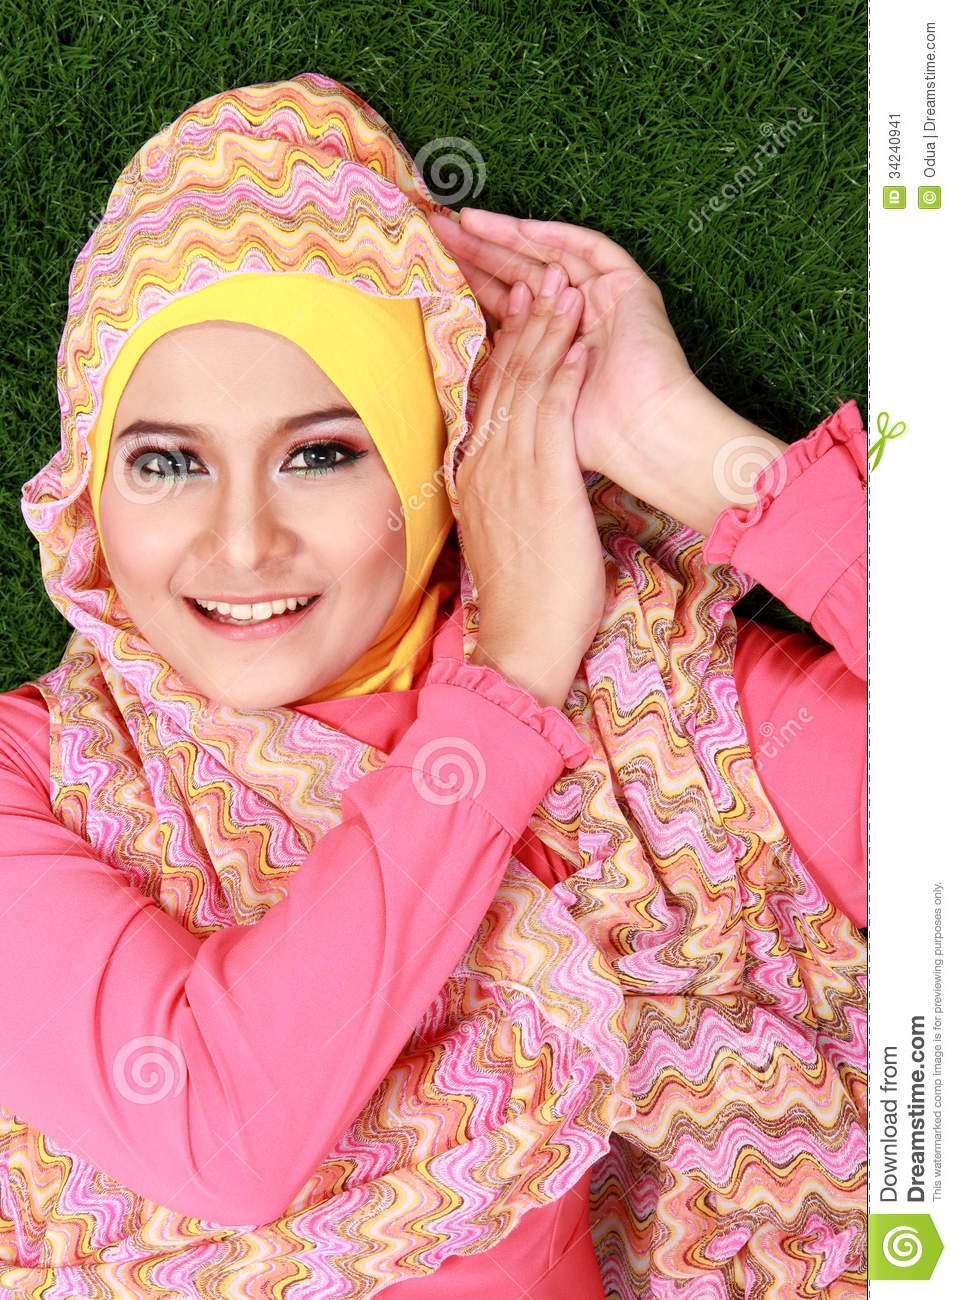 yuanling muslim girl personals A muslim chat site where you can find other islamic men and women singles for dating, chatting, and marriage muslim matrimonials since 2003.